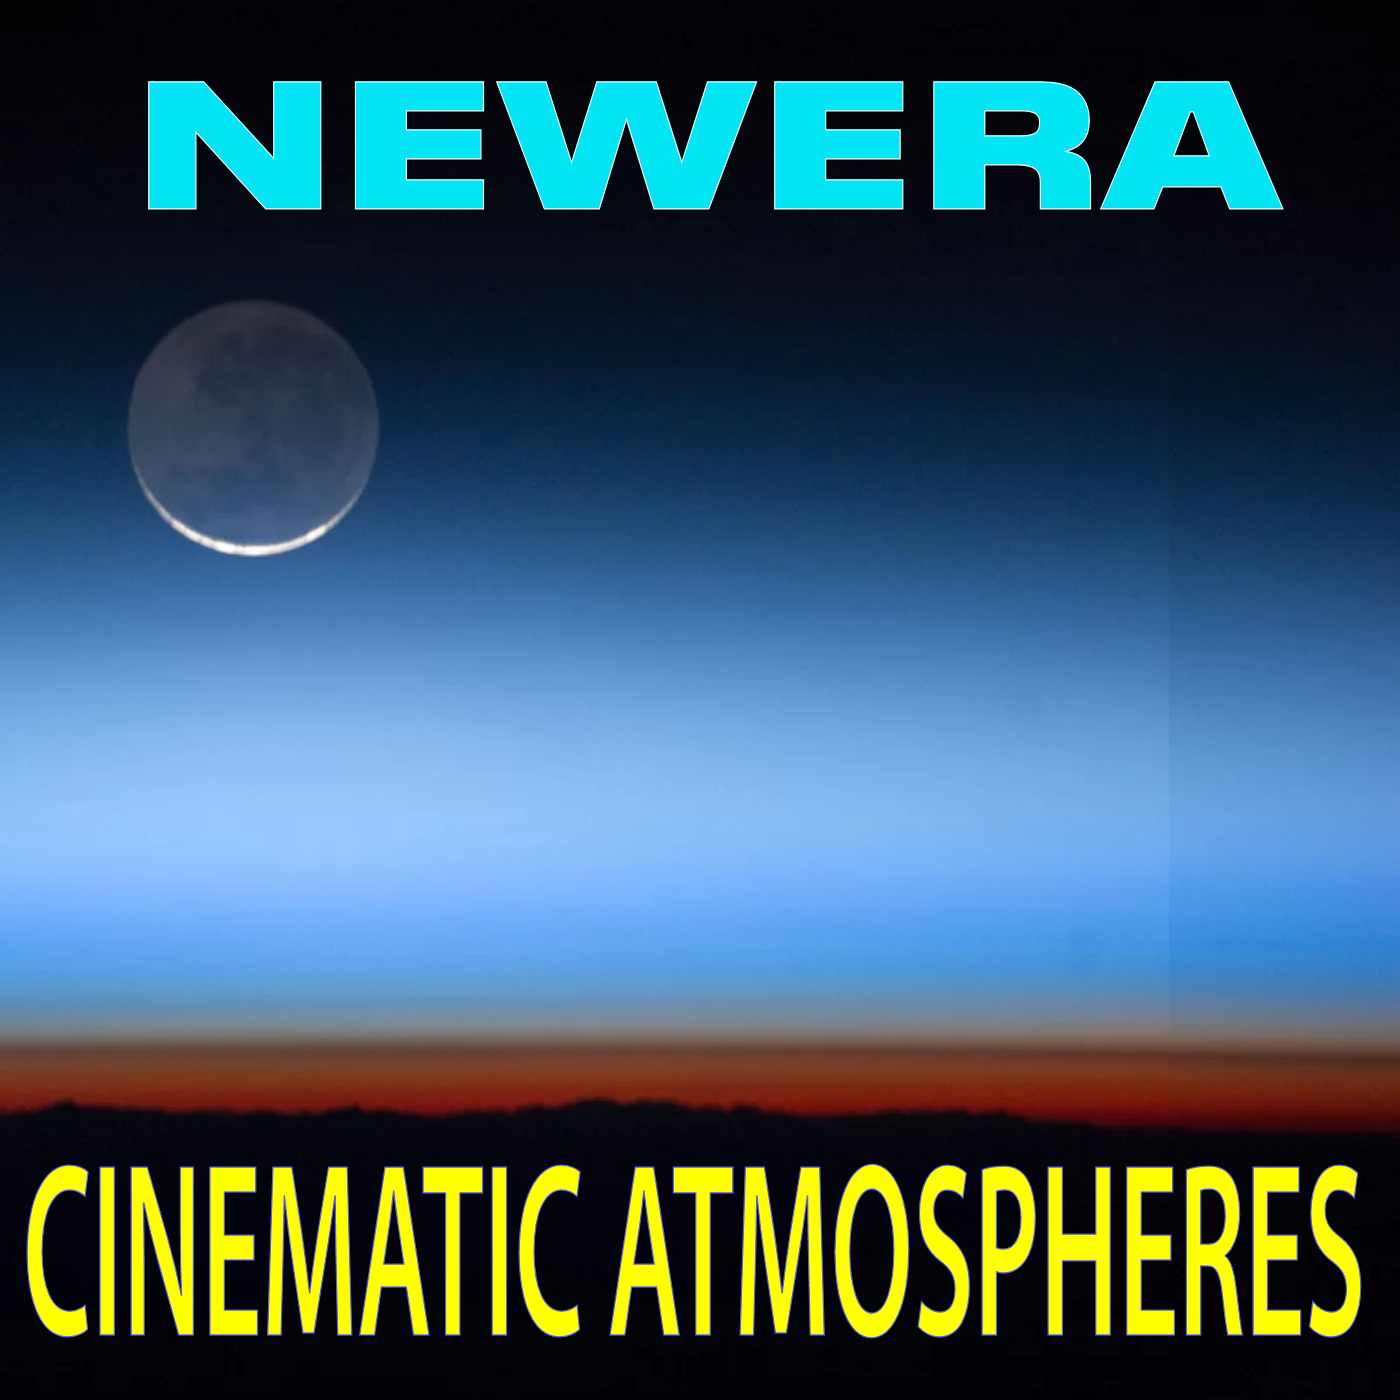 Cinematic Atmospheres by NewEra